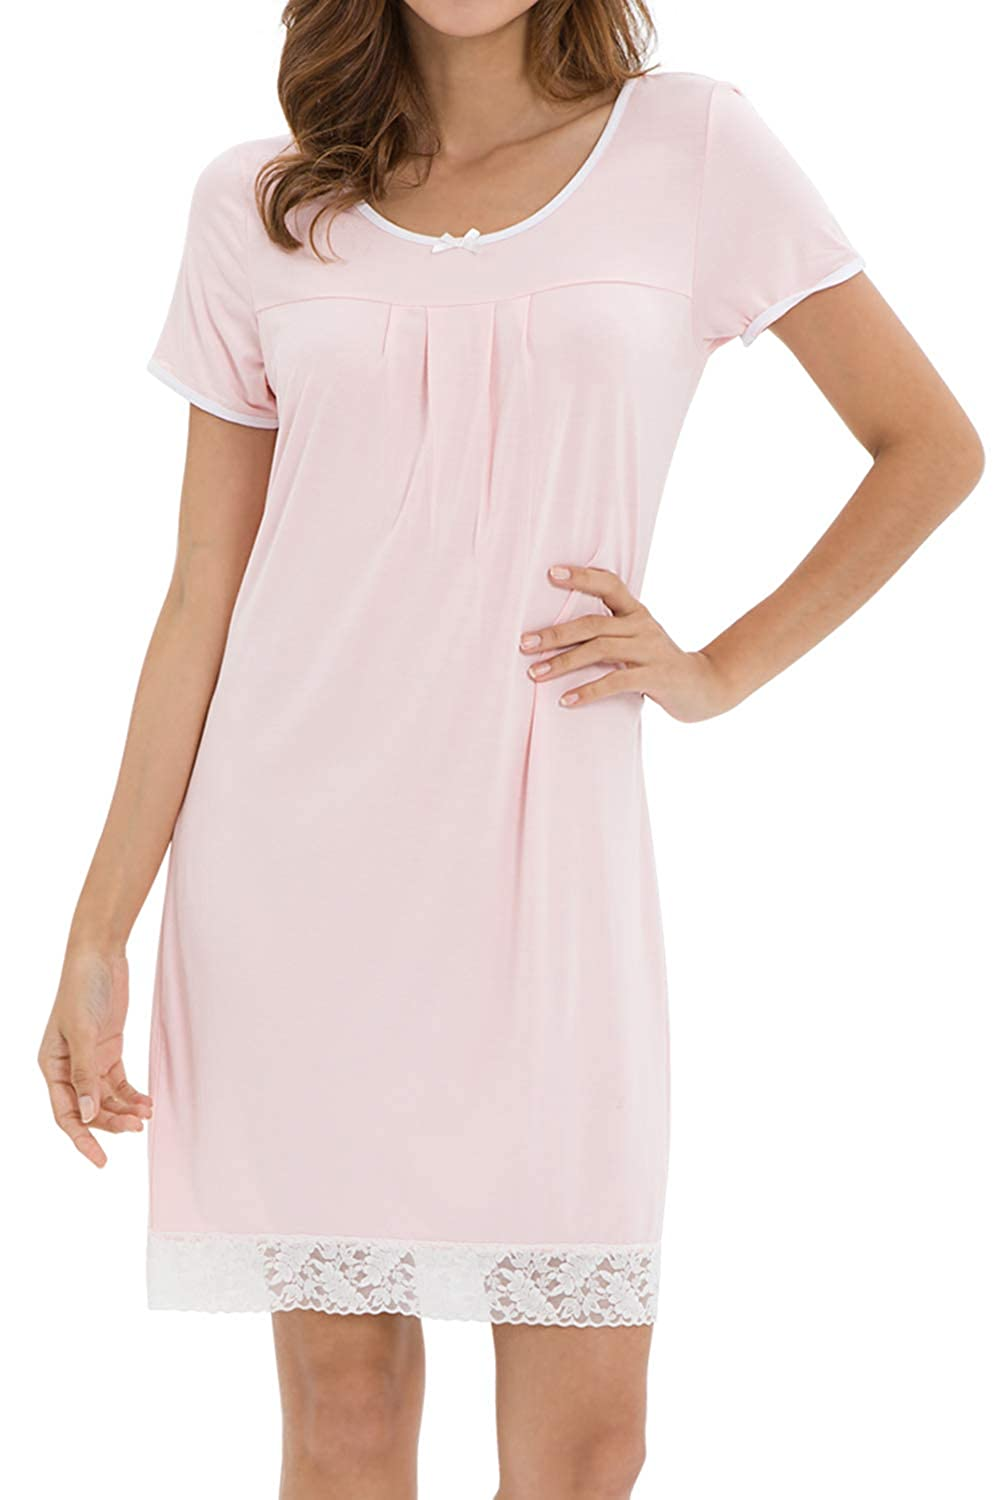 Pink WiWi Bamboo Lace Nightgowns Short Sleeve Nightshirts for Women